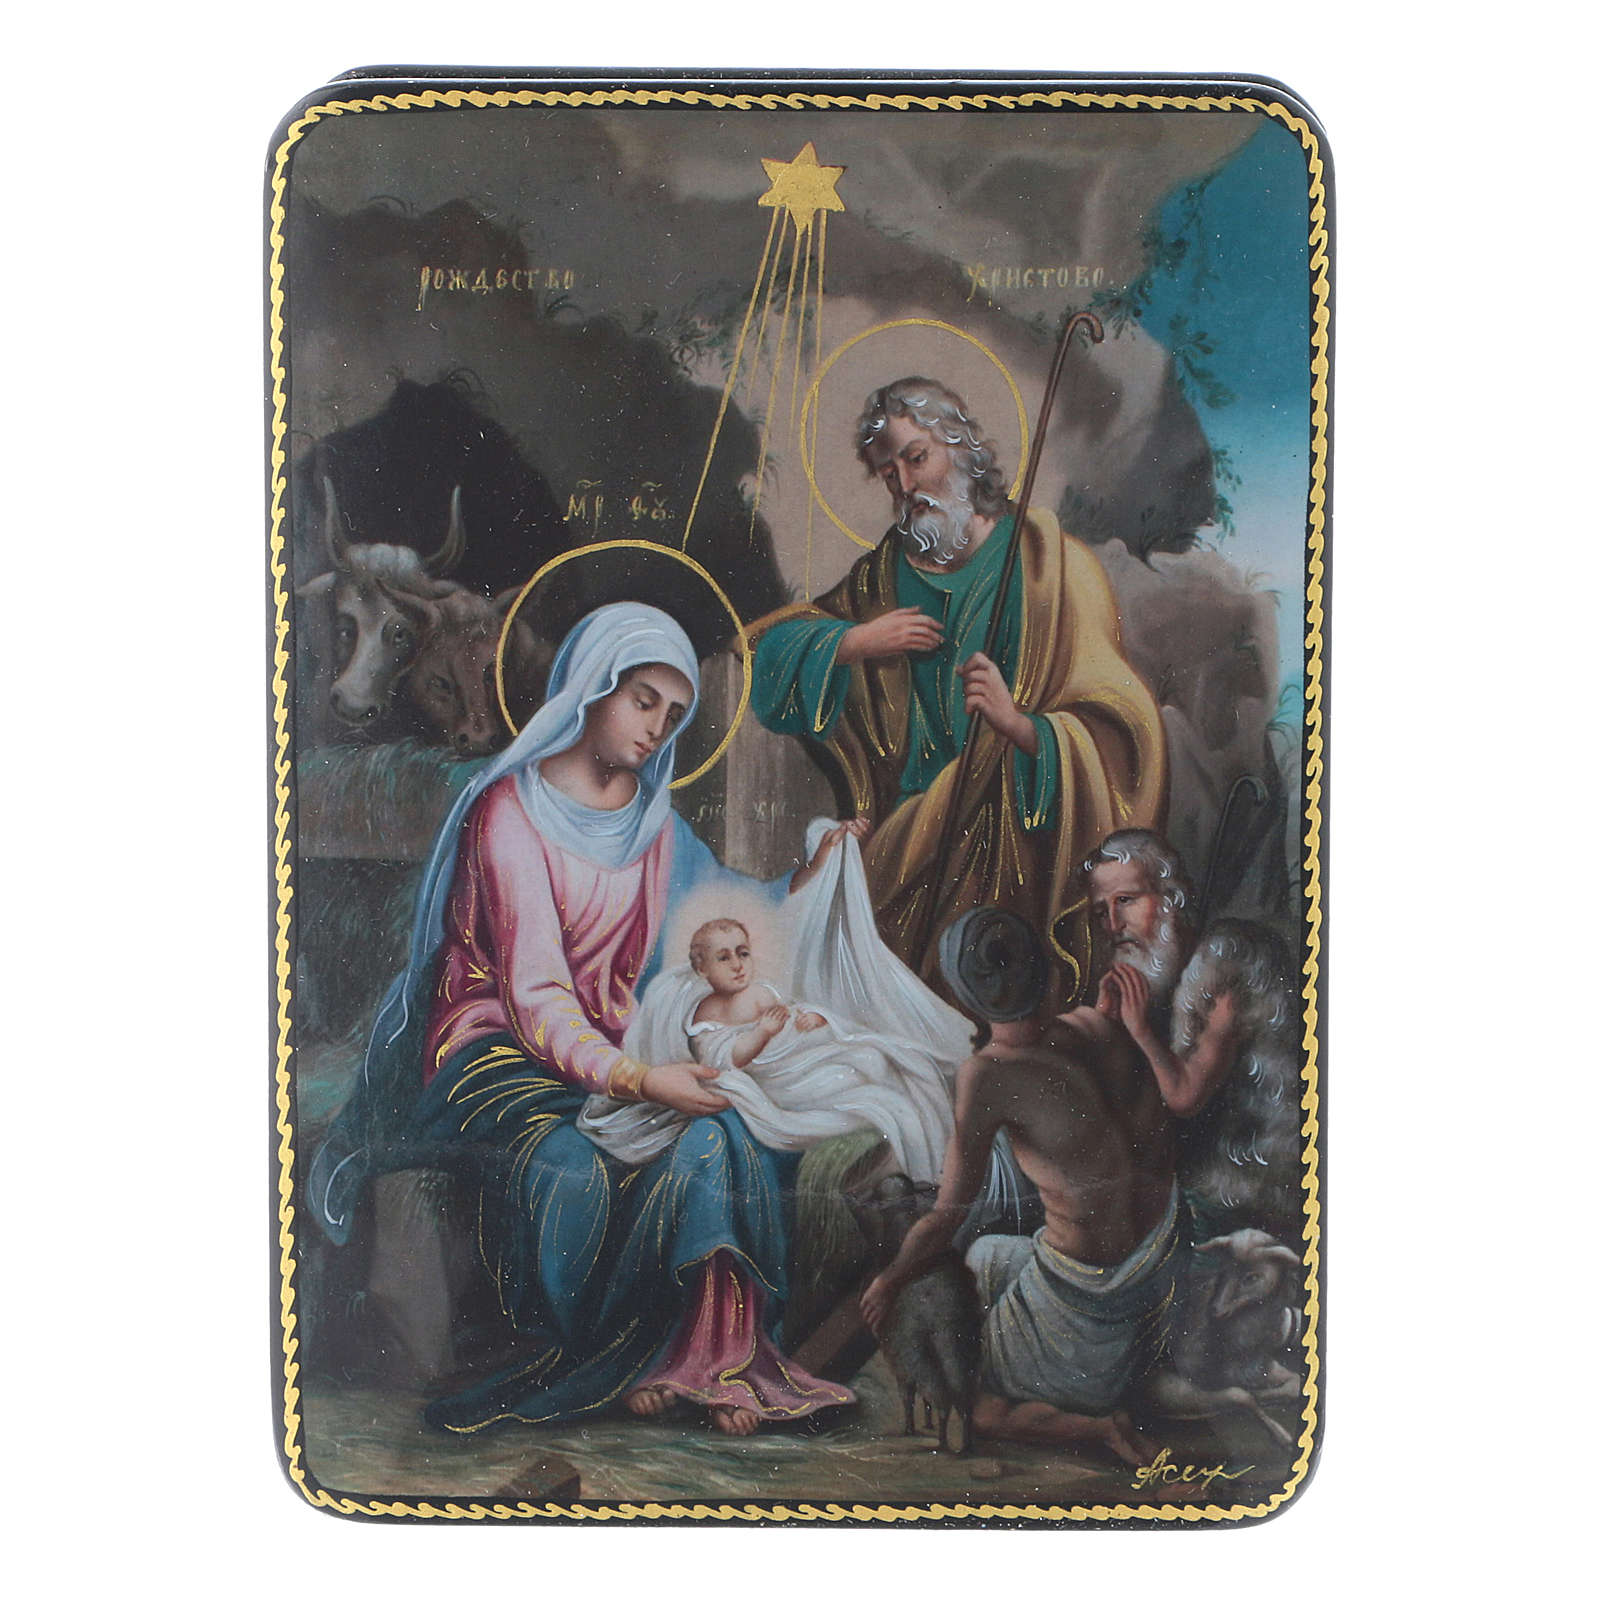 Russian papier-mâché and lacquer box The Birth of Christ Fedoskino style 15x11 cm 4